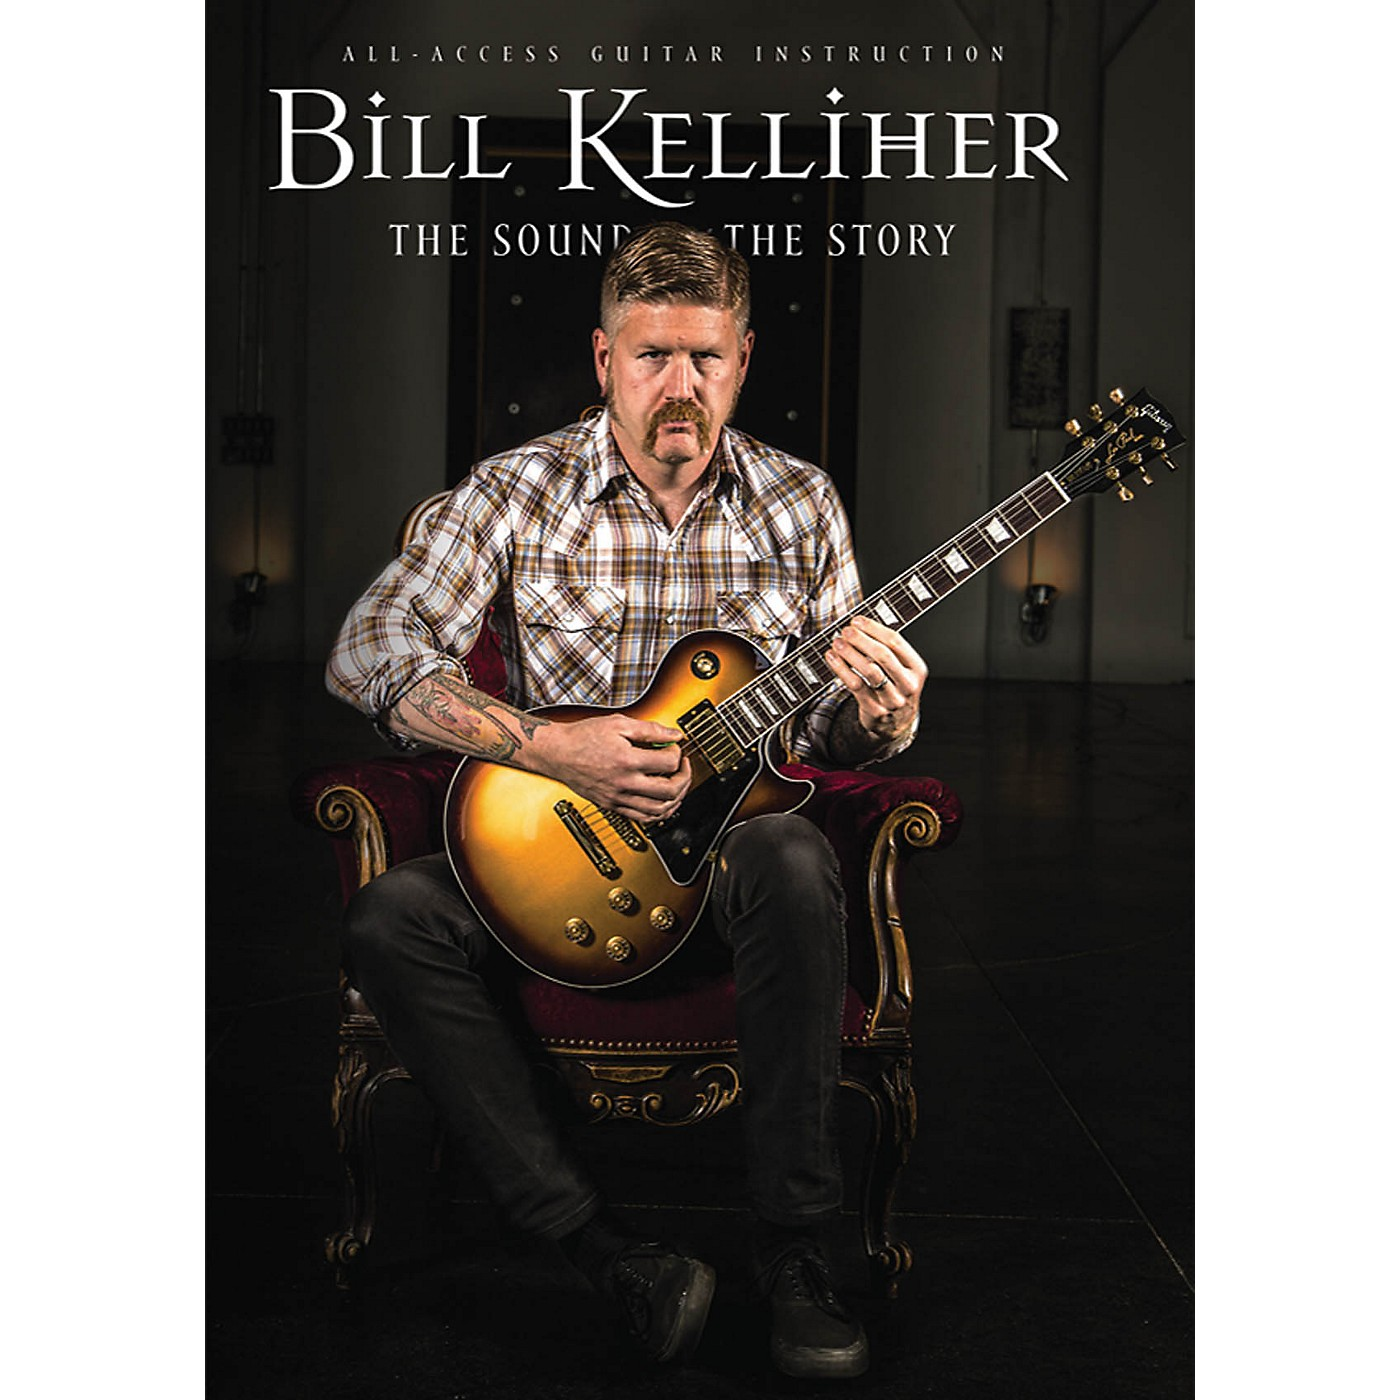 Fret12 Bill Kelliher - The Sound and the Story Instructional/Guitar/DVD Series DVD Performed by Bill Kelliher thumbnail